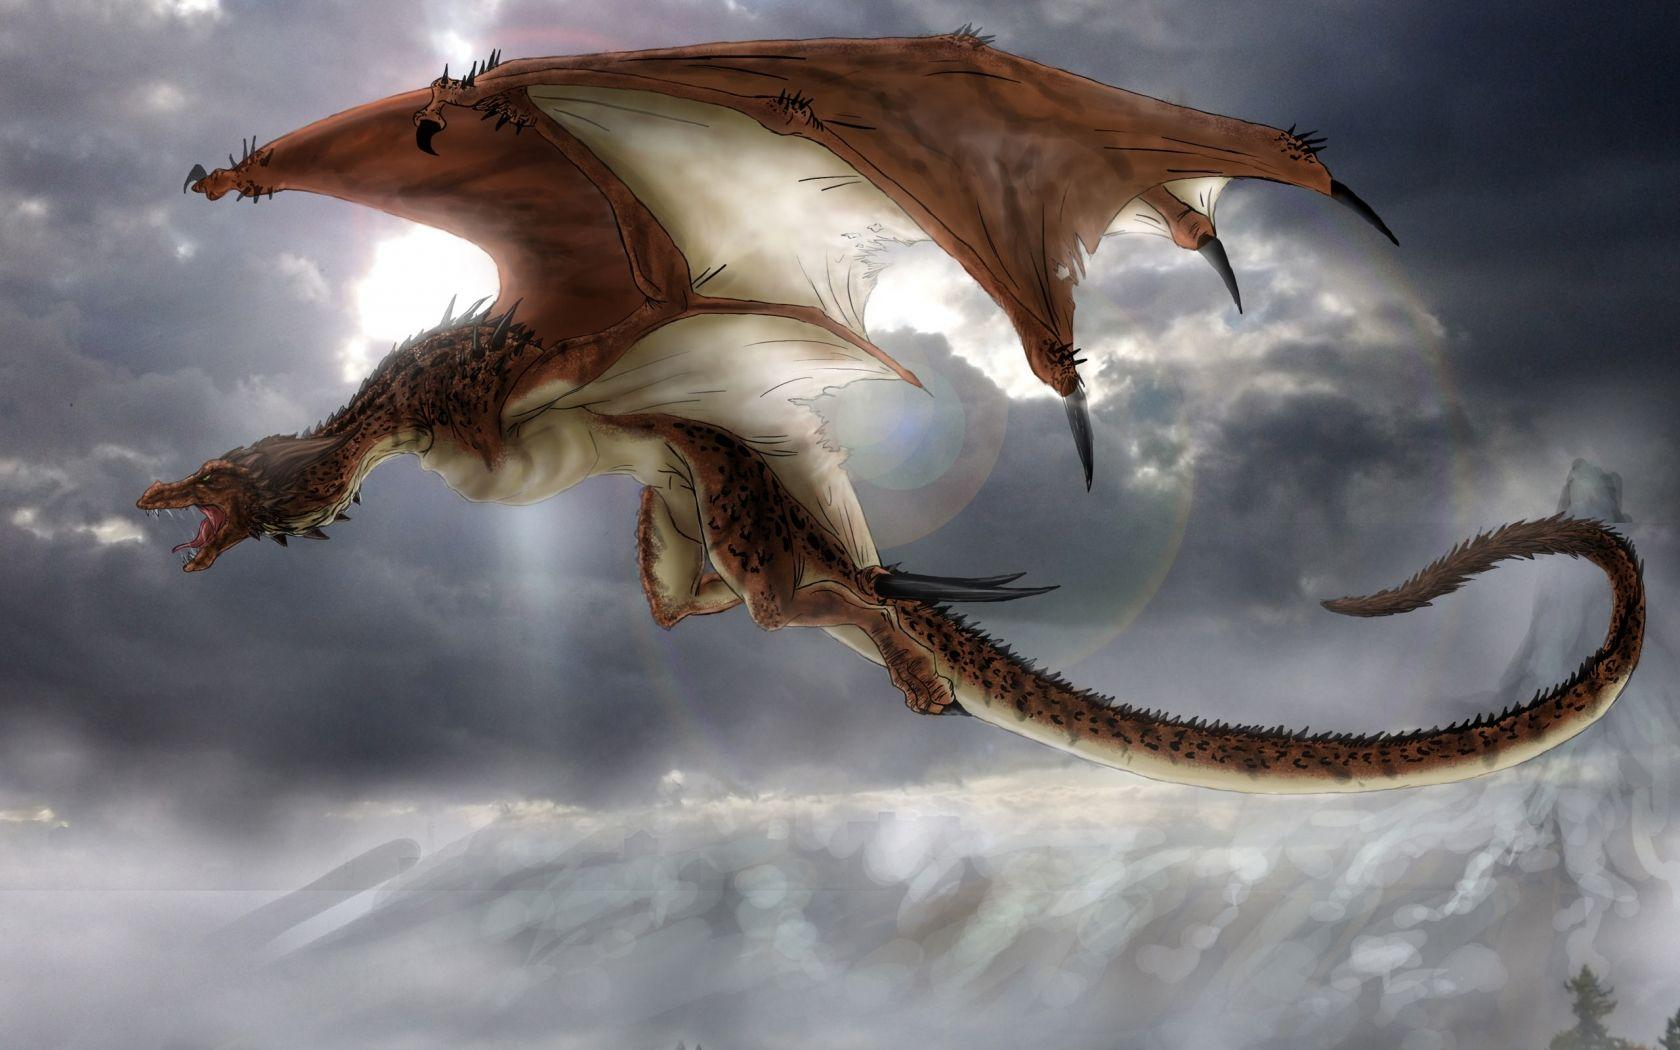 20 free and stunning dragon wallpaper collection - HD 1366×768